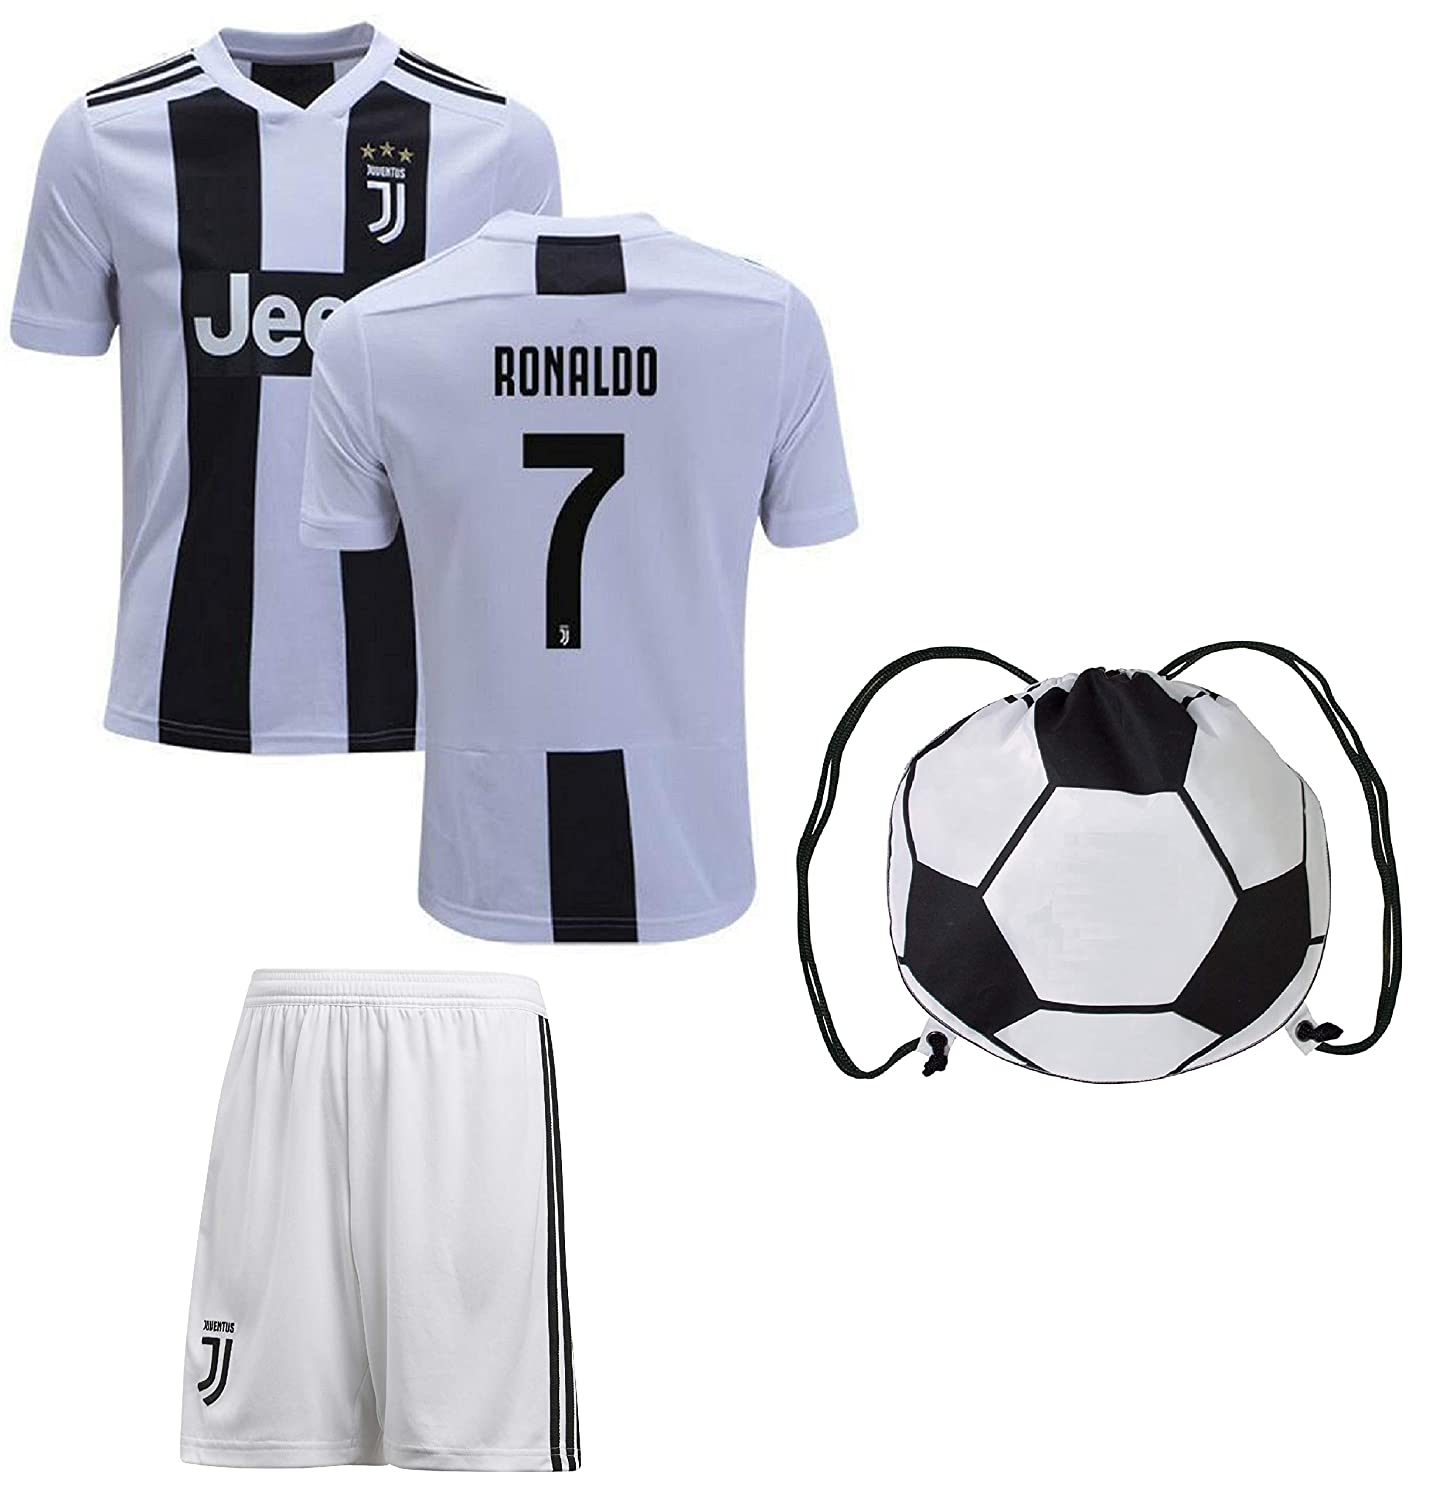 sale retailer 3fd79 781b5 Cristiano Ronaldo Juventus #7 Youth Soccer Jersey Home Short Sleeve Shorts  Kit Kids Gift Set